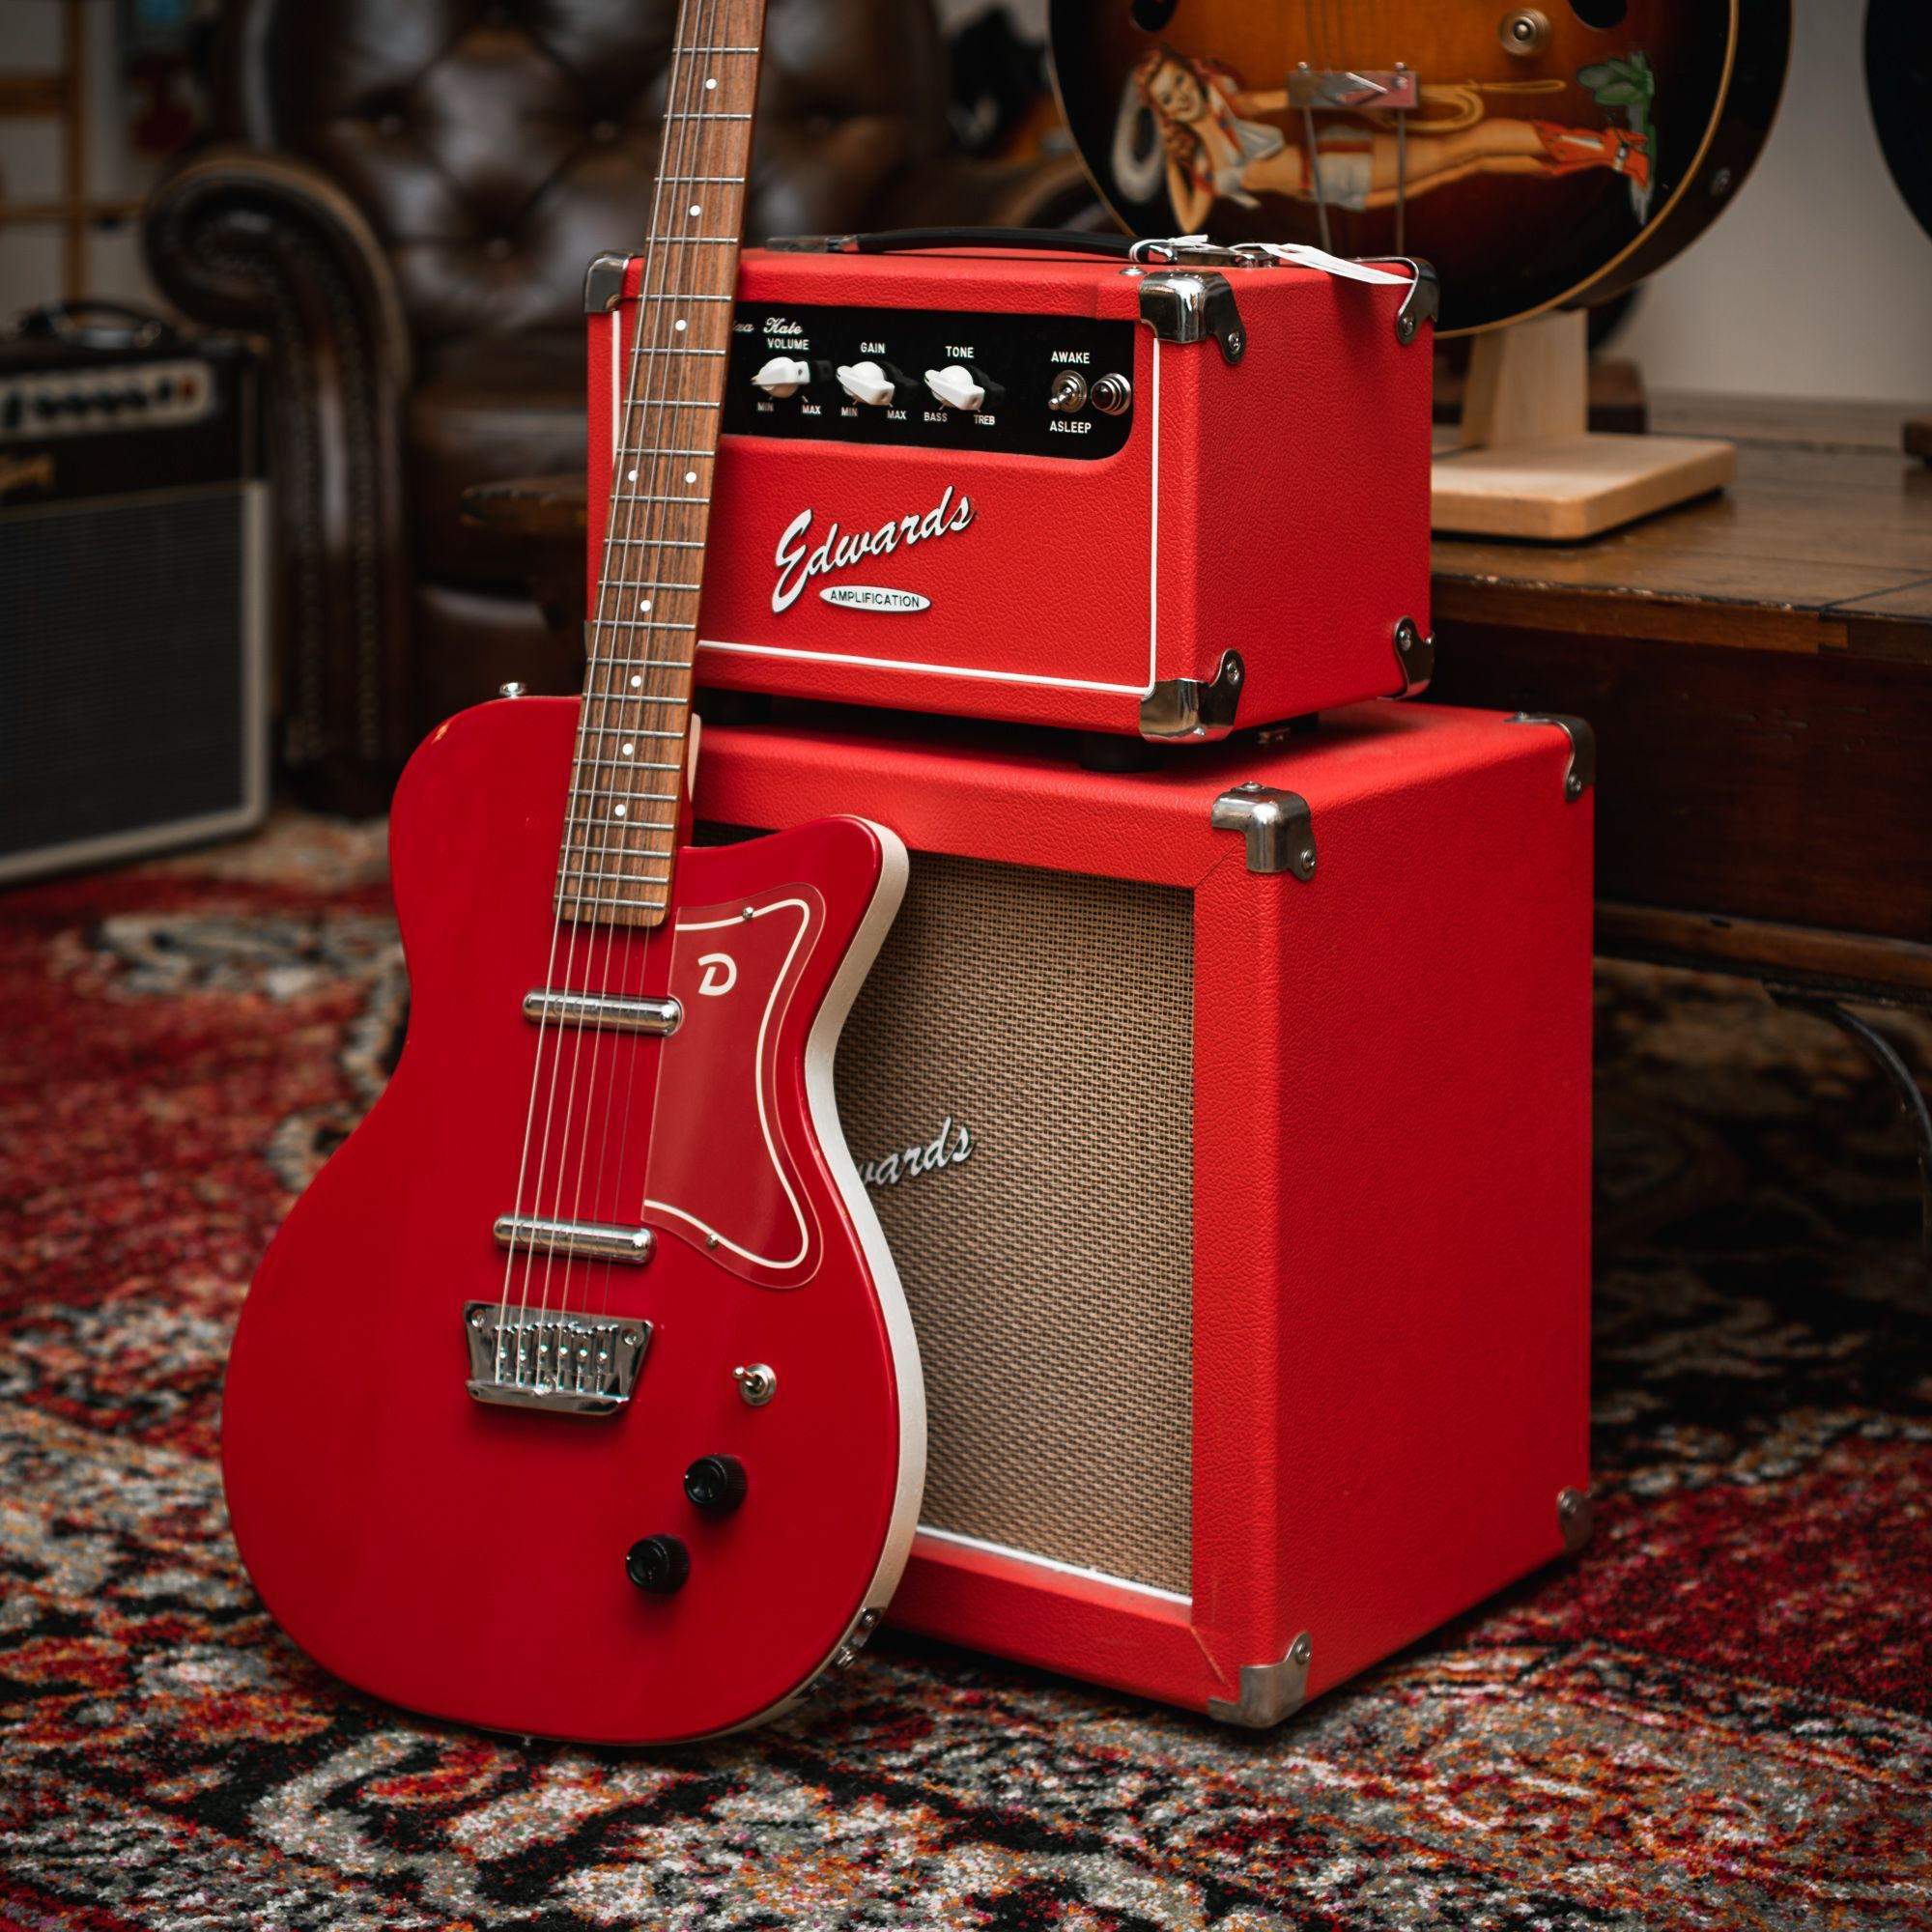 Danelectro '56 Baritone Guitar Red in 2019 | Baritone ...